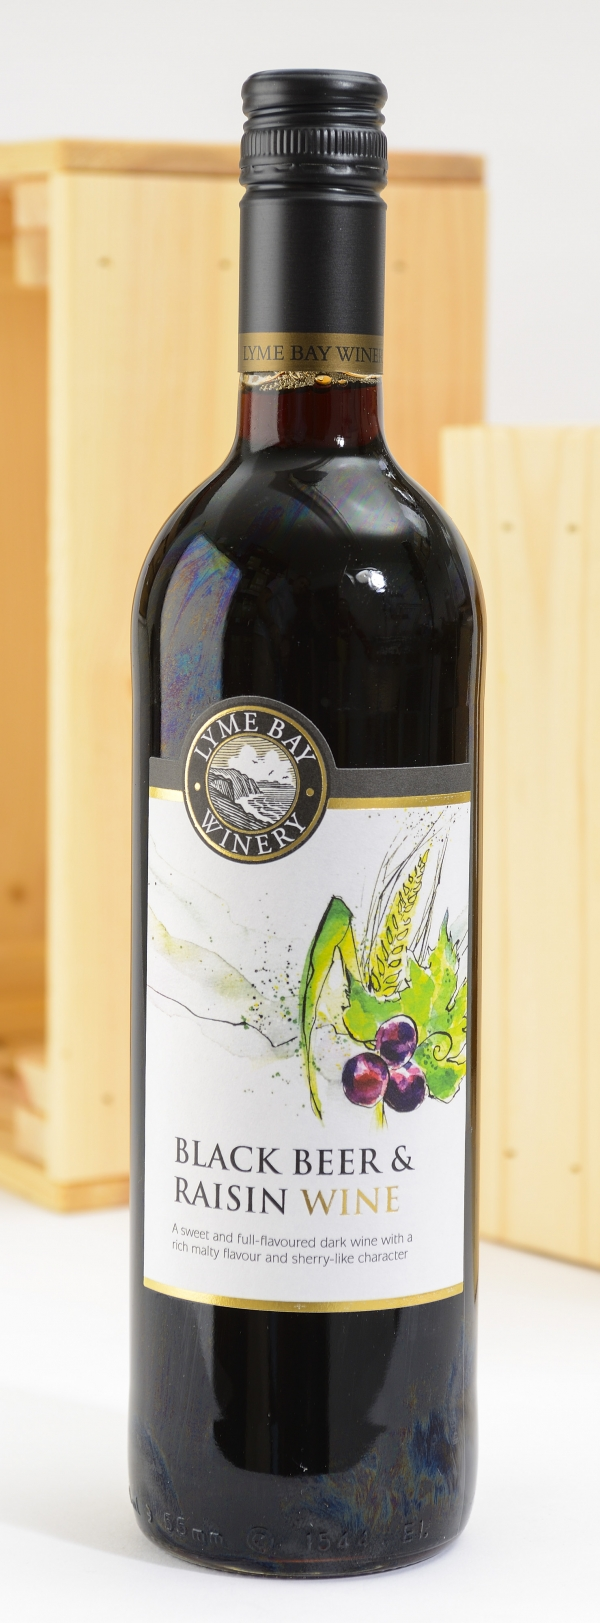 <p>Blackbeer &amp; Raisin Wine - sweet&sbquo; dark wine&sbquo; with a rich malty &#124; Hartington Cheese Shop</p>